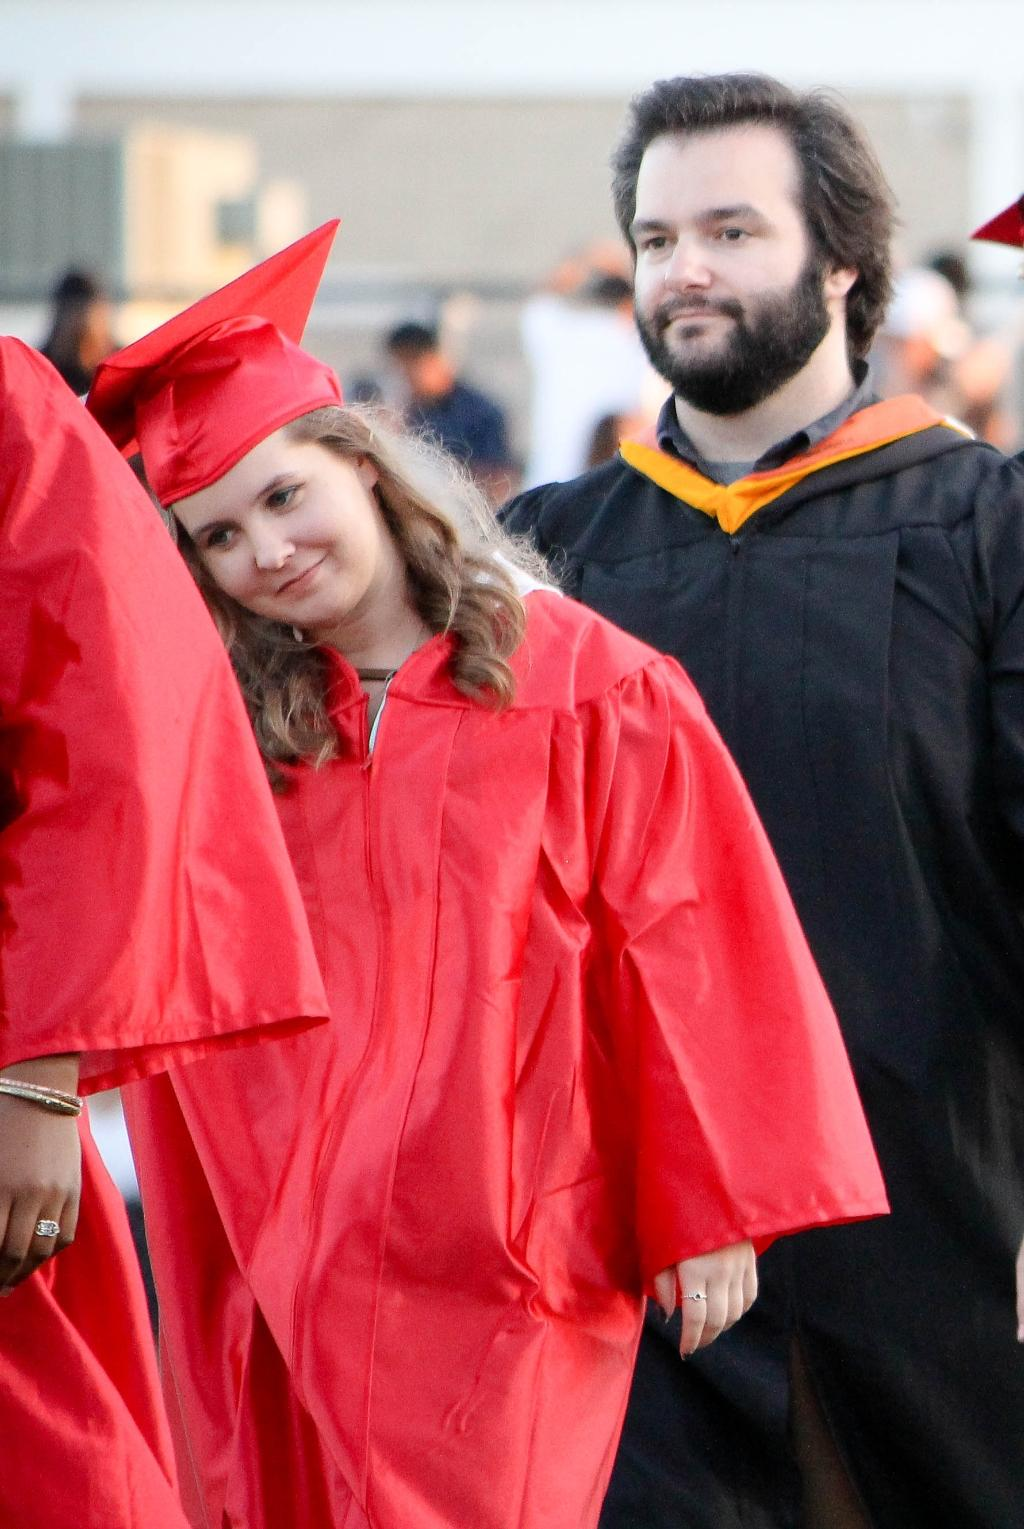 students of the victoria east high school 2018 graduating walking into memorial stadium, smiling female student and male teacher